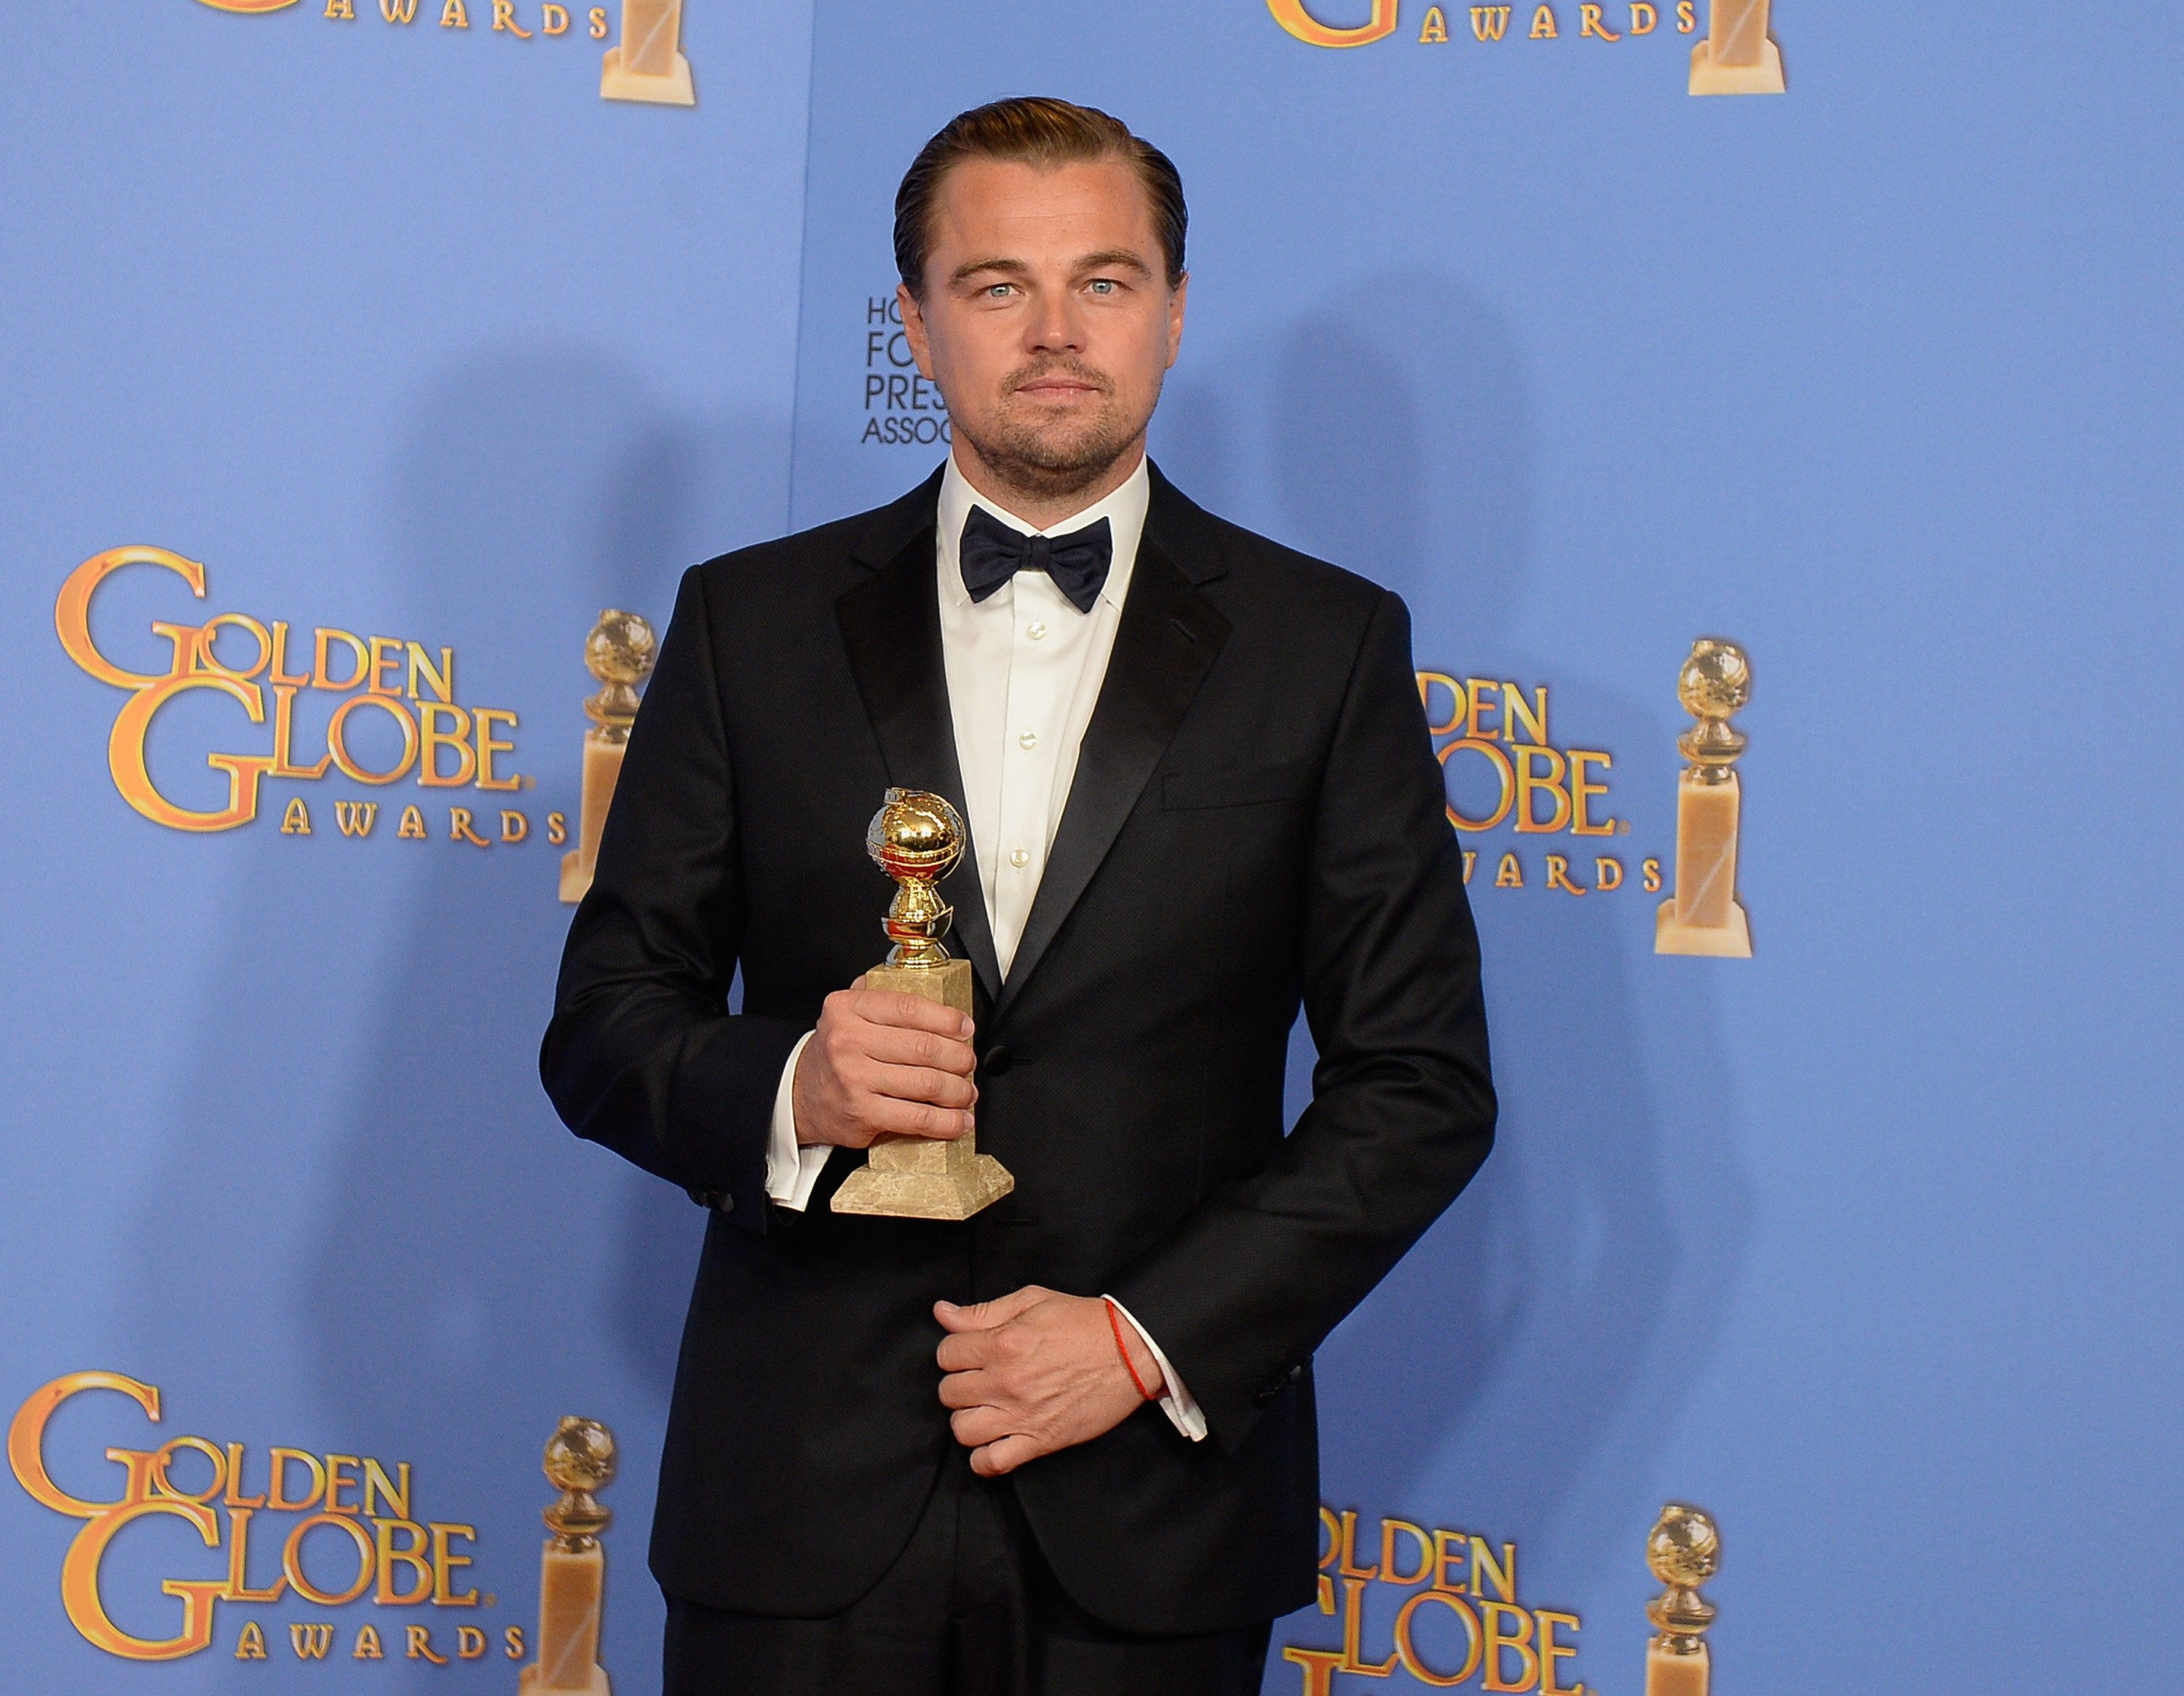 BEVERLY HILLS, CA - JANUARY 10:  73rd ANNUAL GOLDEN GLOBE AWARDS -- Pictured: Actor Leonardo DiCaprio, winner of the award for Best Performance by an Actor in a Motion Picture - Drama for 'The Revenant', poses in the press room at the 73rd Annual Golden Globe Awards held at the Beverly Hilton Hotel on January 10, 2016.  (Photo by Kevork Djansezian/NBC/NBCU Photo Bank via Getty Images)